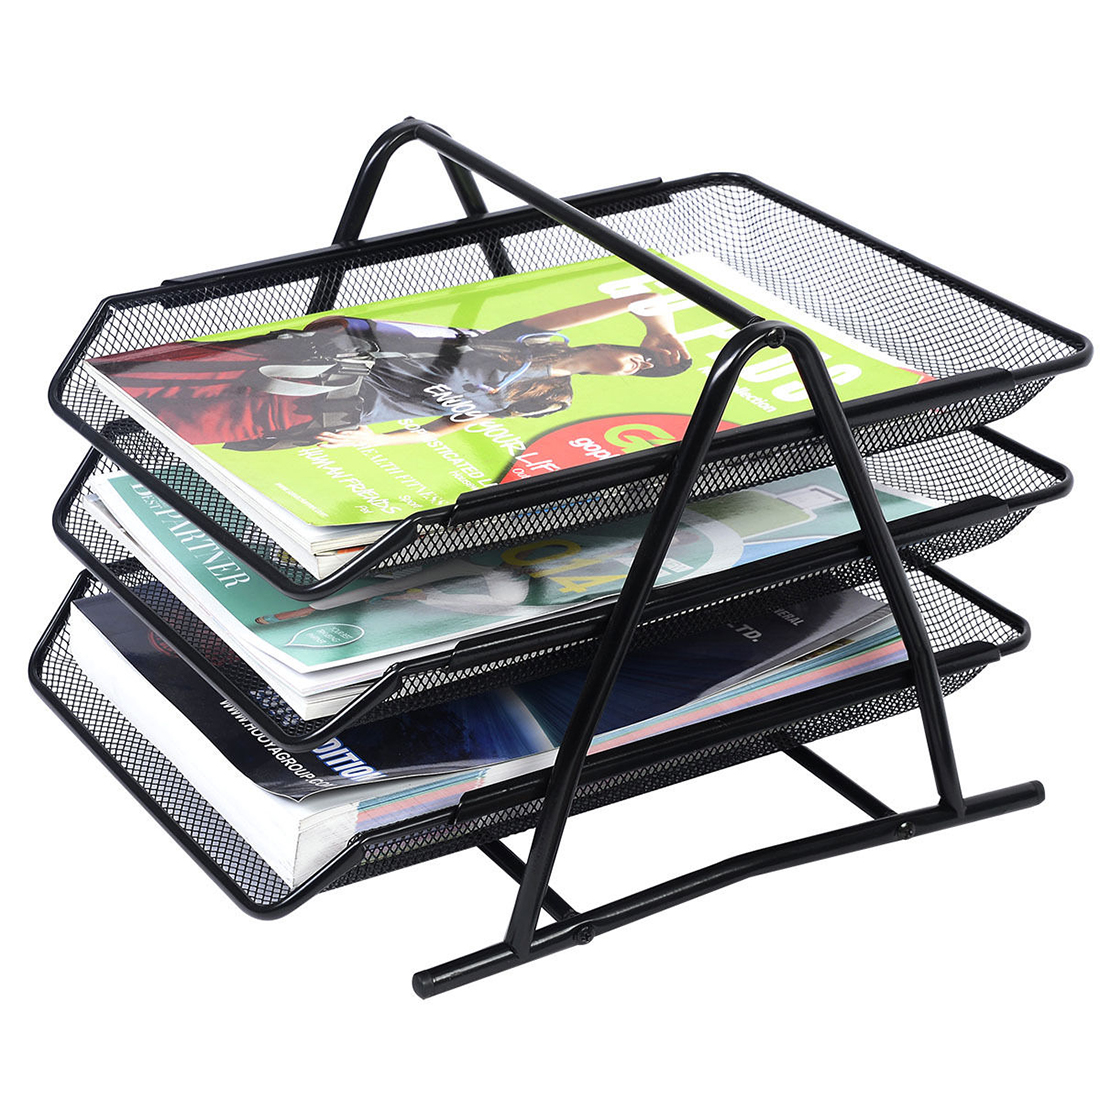 Affordable Office Filing Trays Holder A4 Doent Letter Paper Wire Mesh Storage Organiser